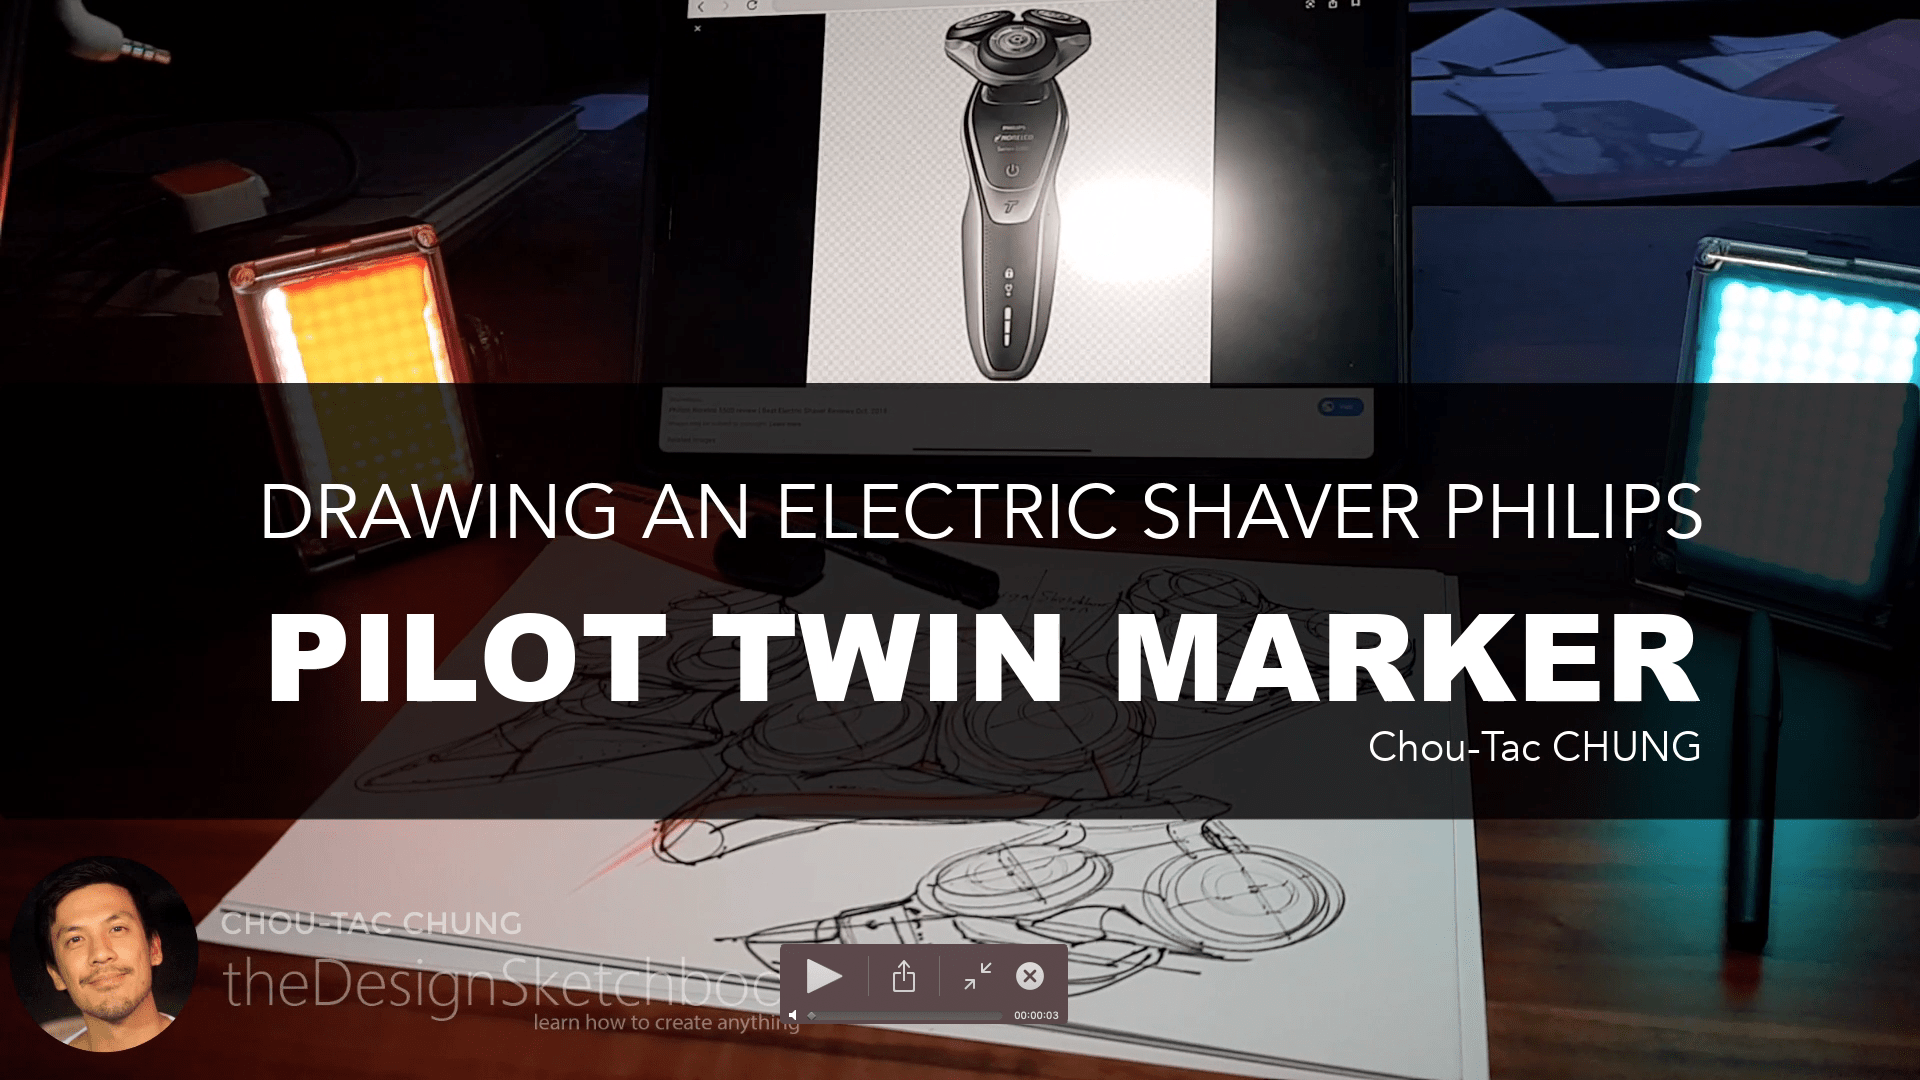 Sketching an electric shaver PHILIPS with the pilot twin marker pen - the design sketchbook - chung chou tac a1